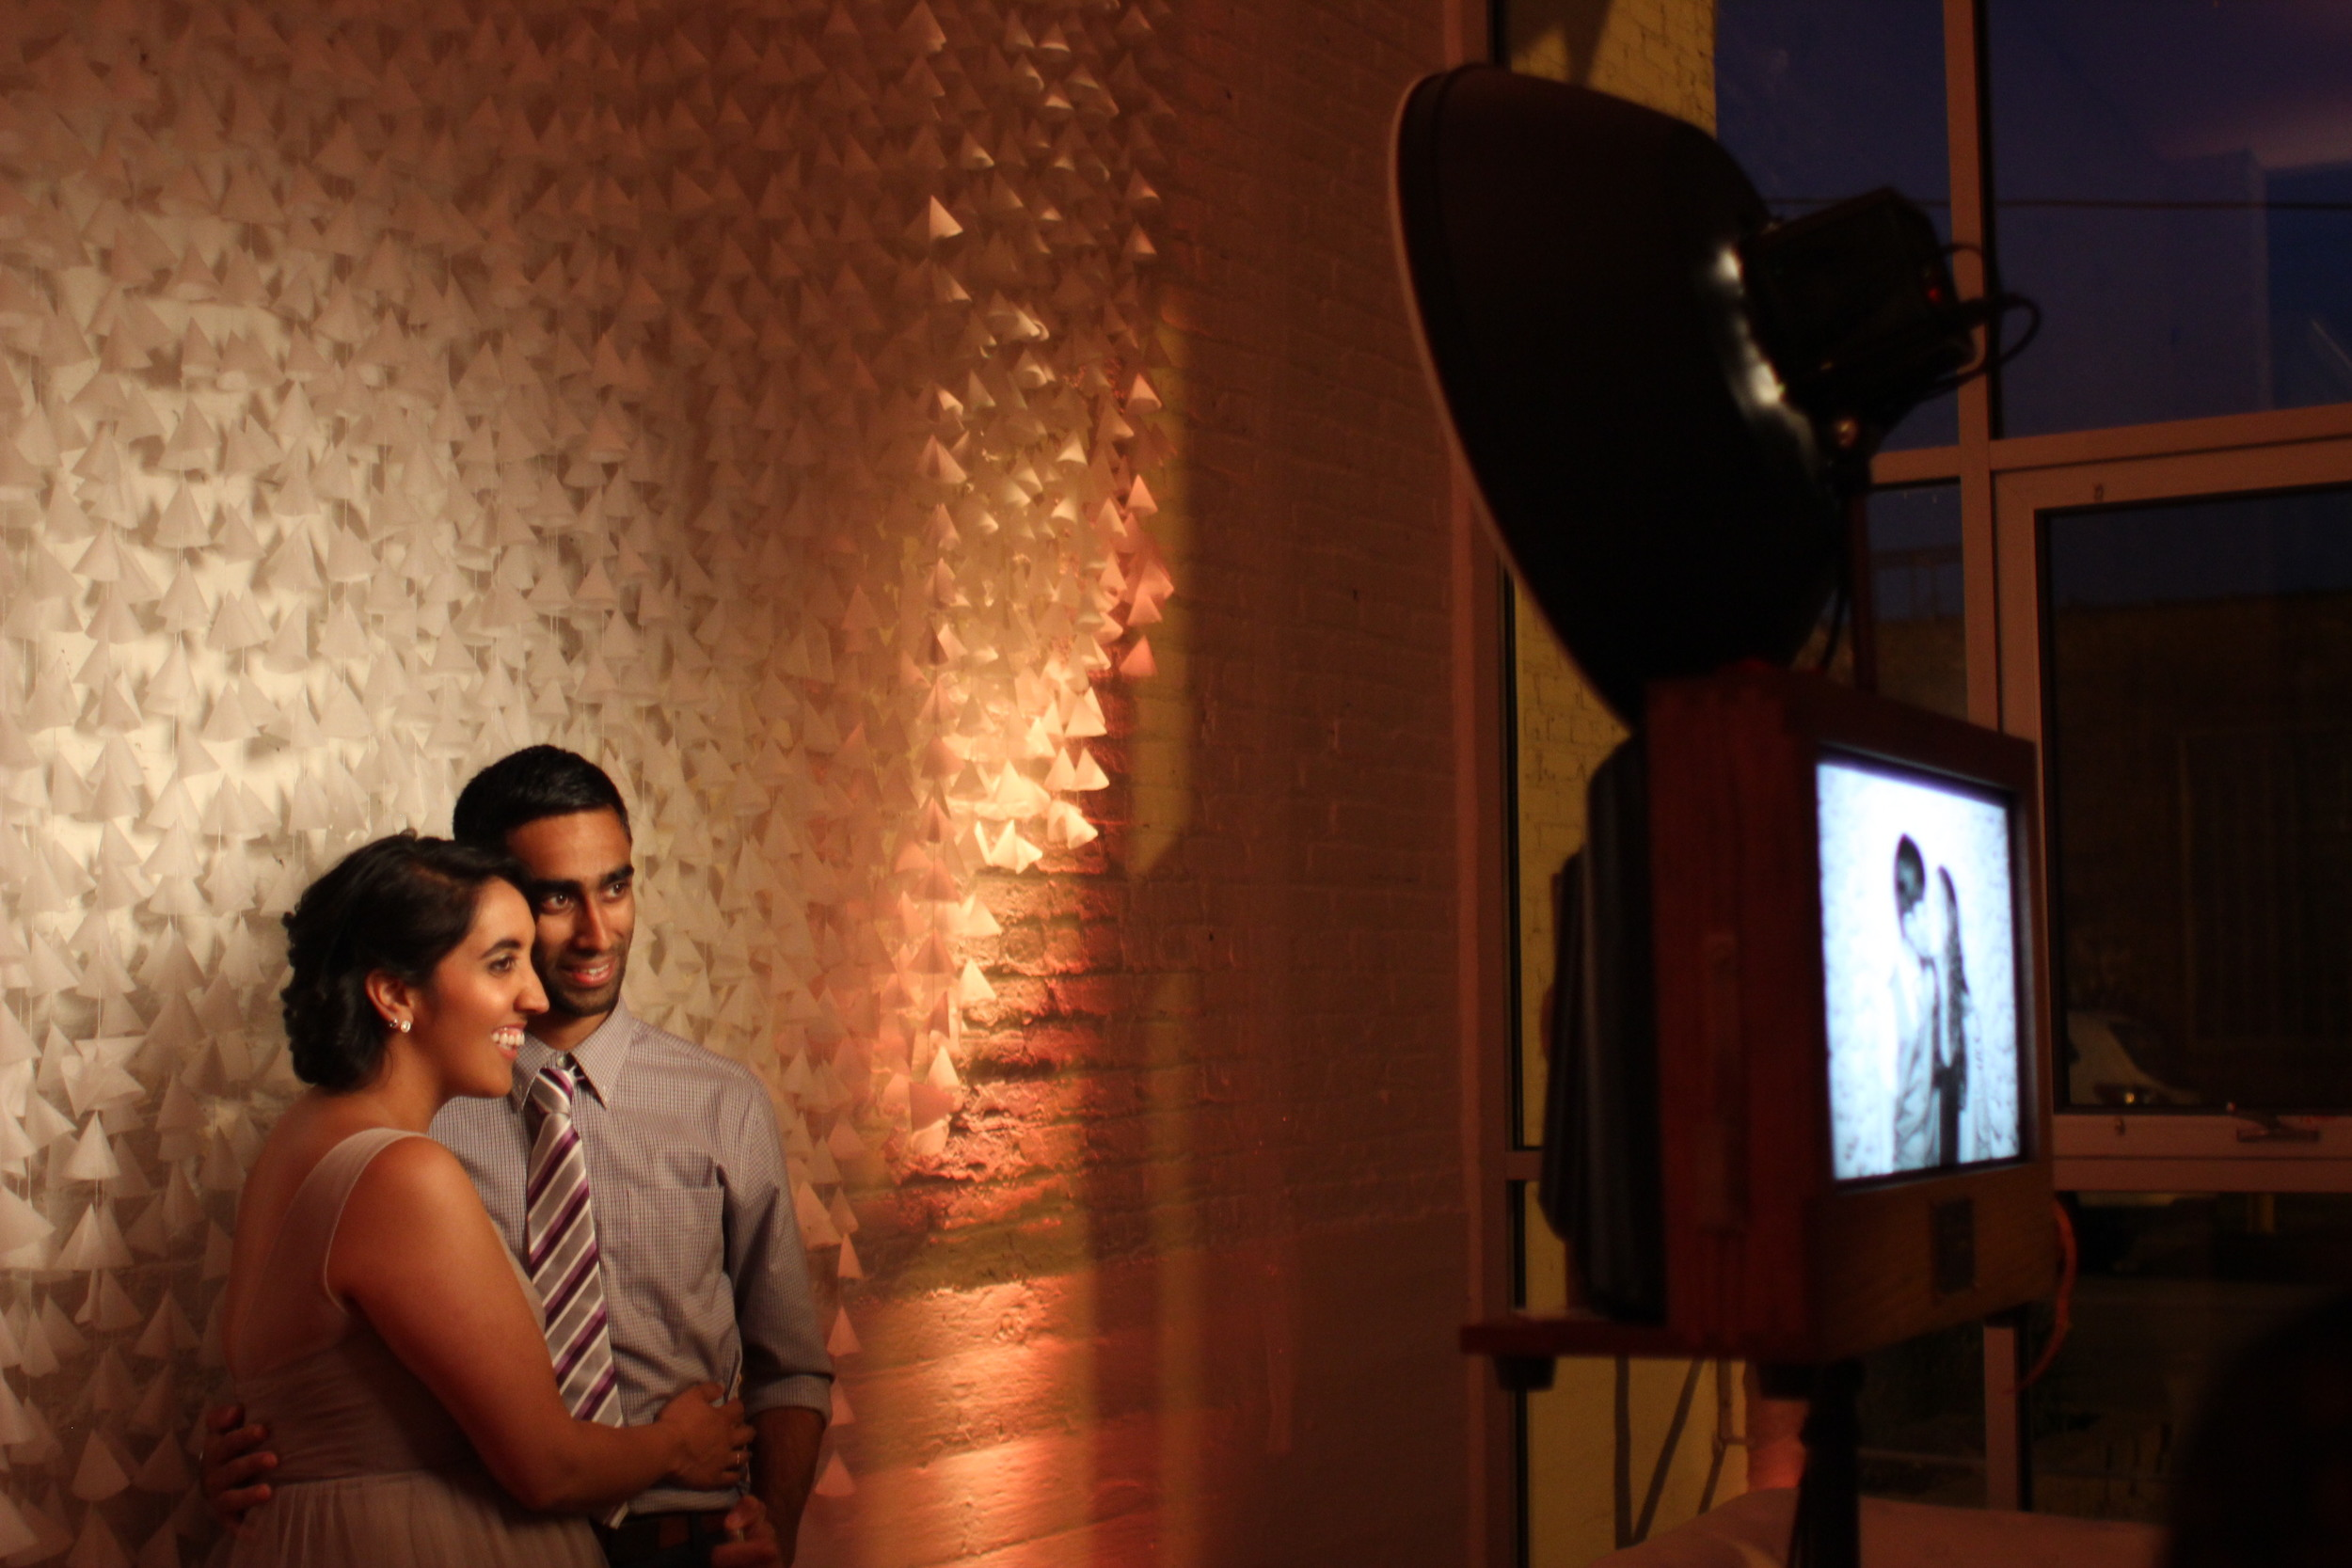 Wedding guests at Room 1520 having fun with the photo booth!